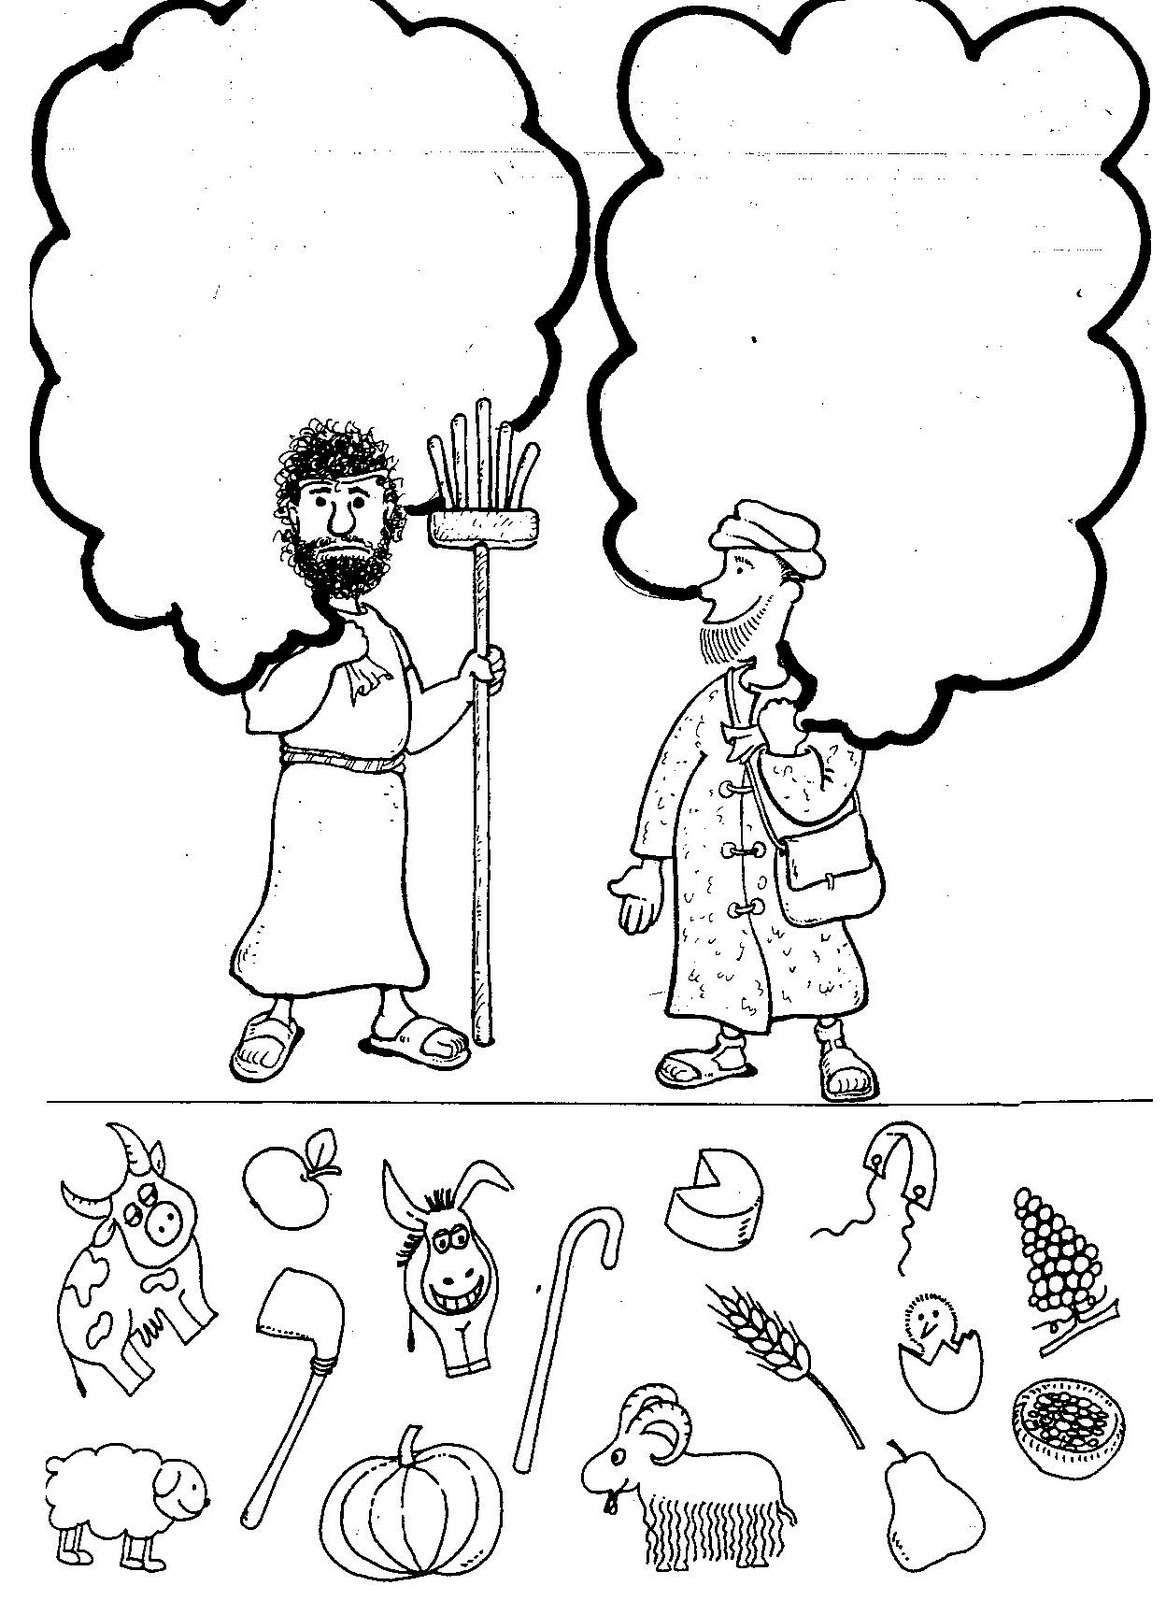 cain and abel coloring pages - photo#22